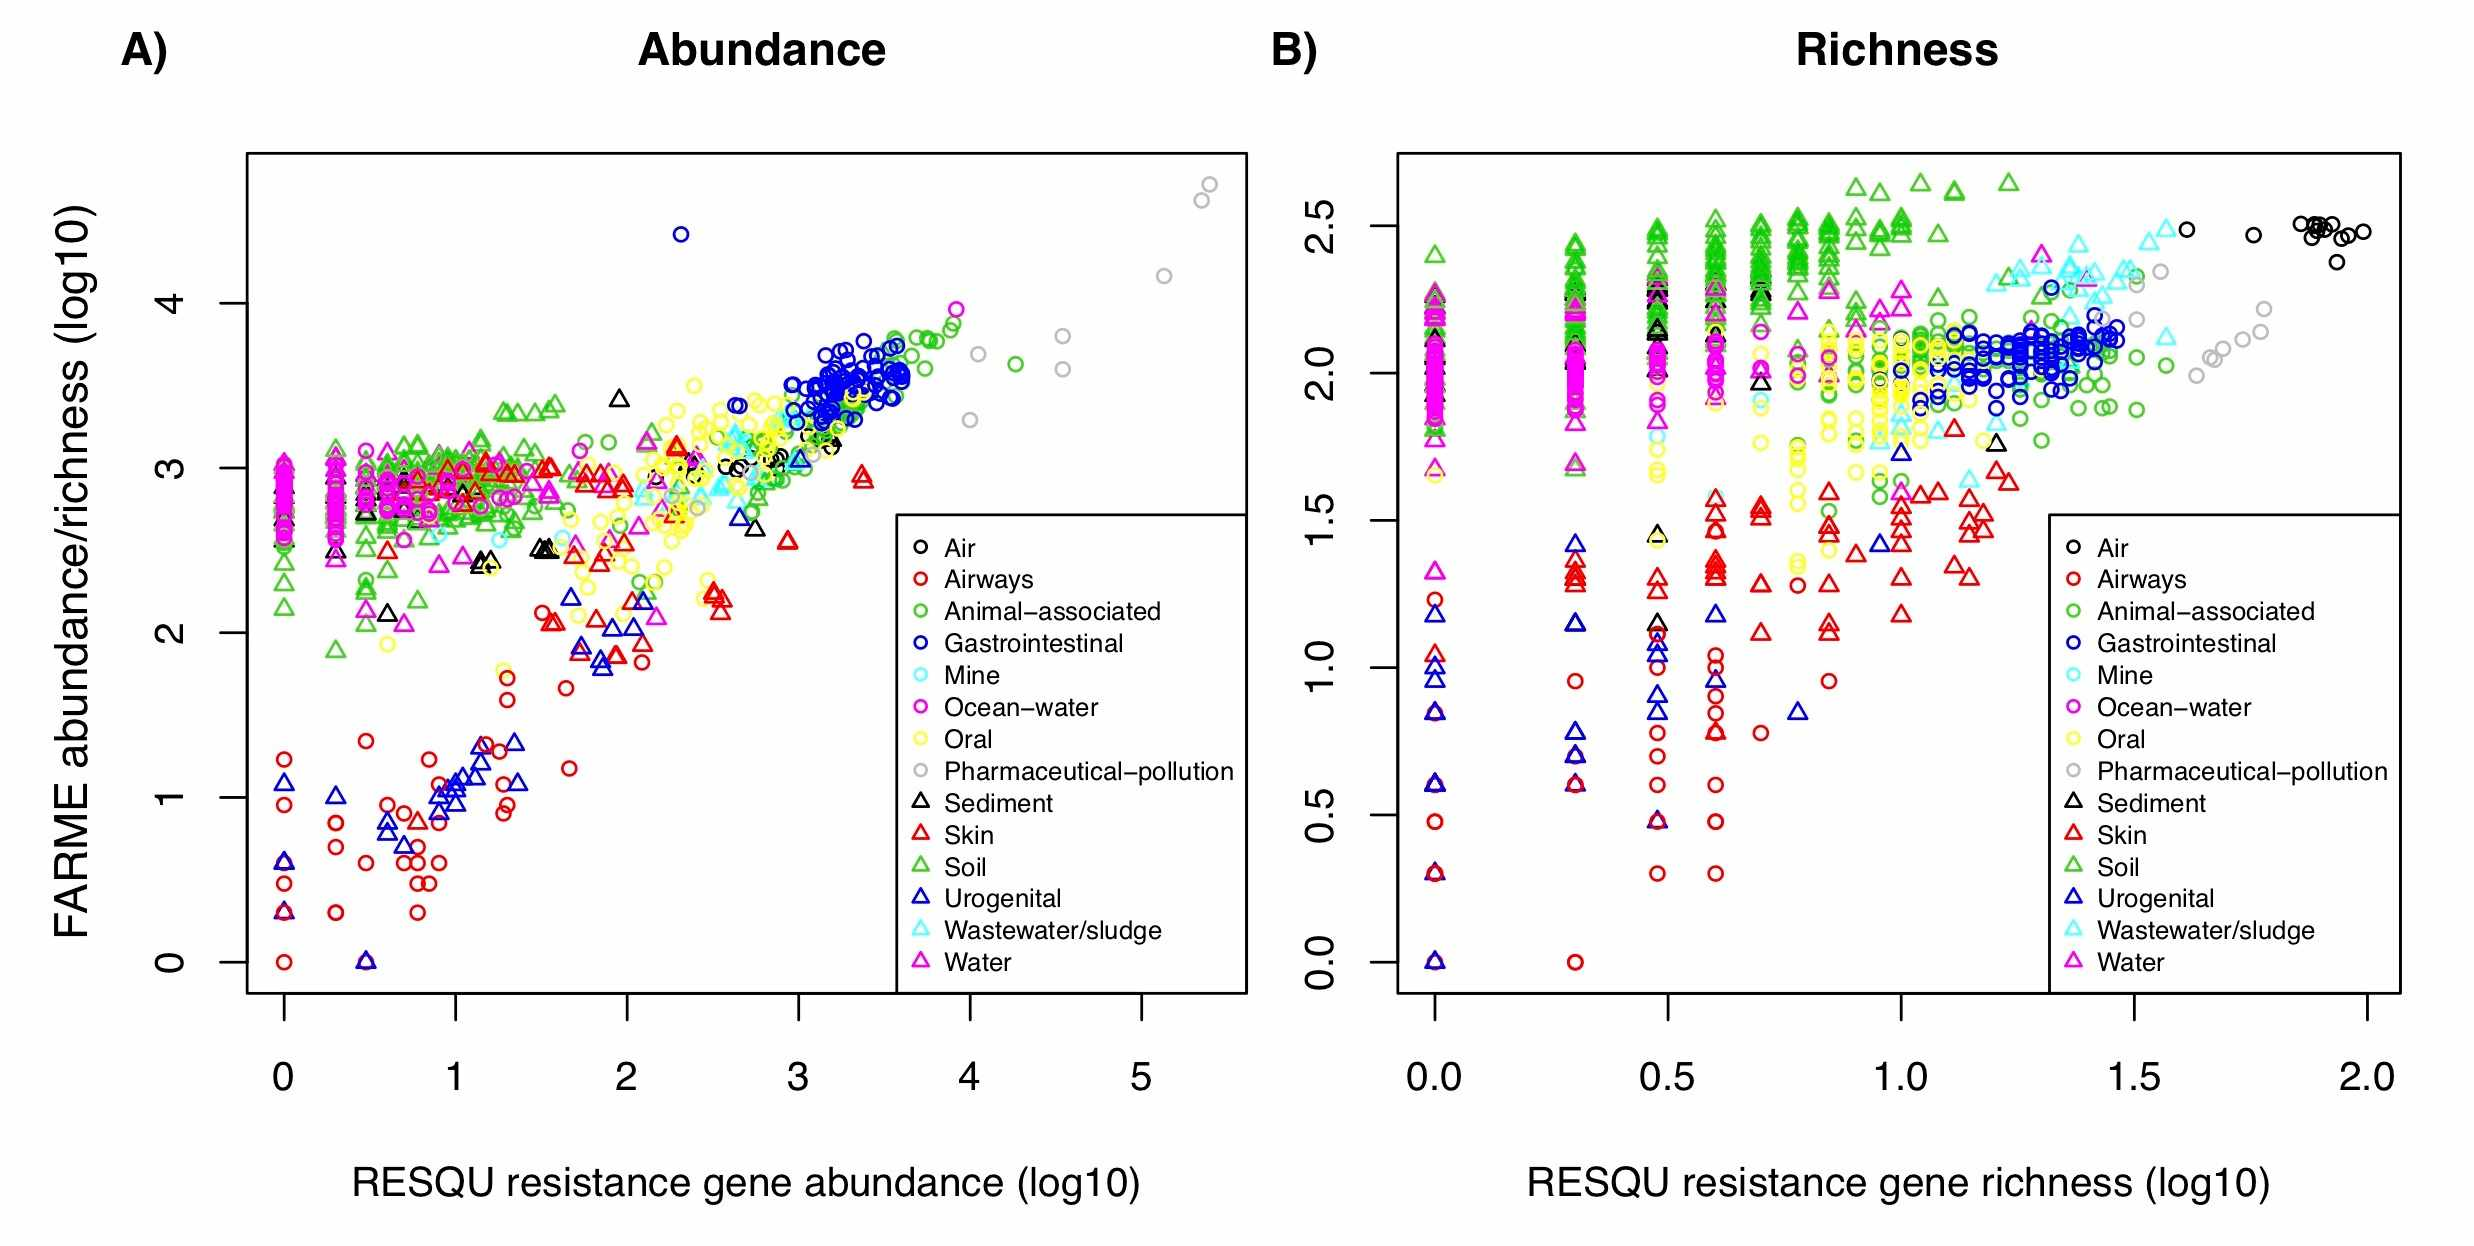 The abundance and diversity of known antibiotic resistance genes can predict the abundance and diversity of unknown resistance genes